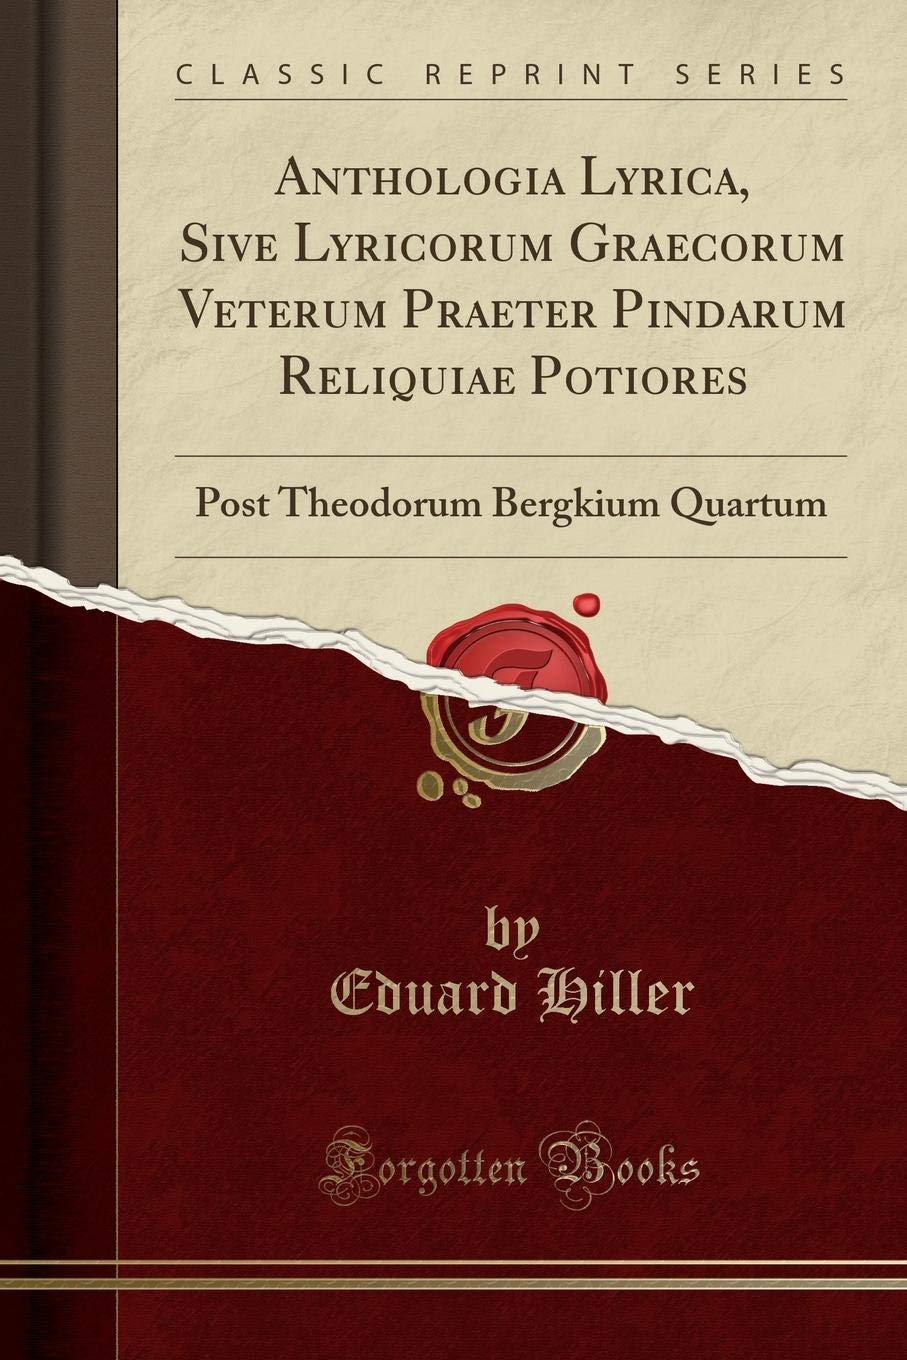 Download Anthologia Lyrica, Sive Lyricorum Graecorum Veterum Praeter Pindarum Reliquiae Potiores: Post Theodorum Bergkium Quartum (Classic Reprint) (Latin Edition) pdf